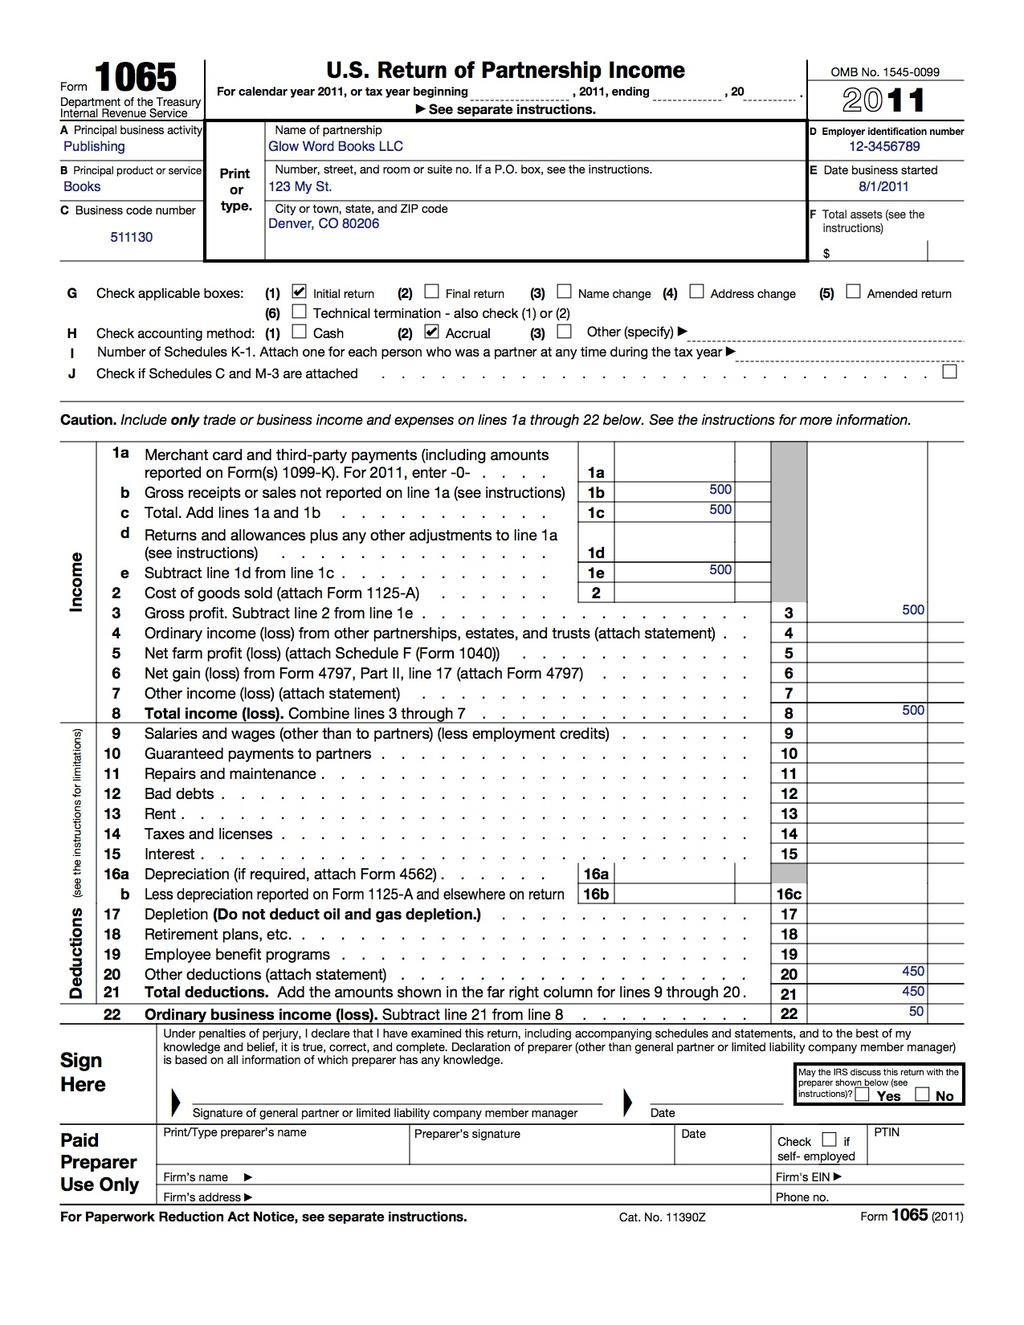 How to fill out an LLC 1065 IRS Tax form